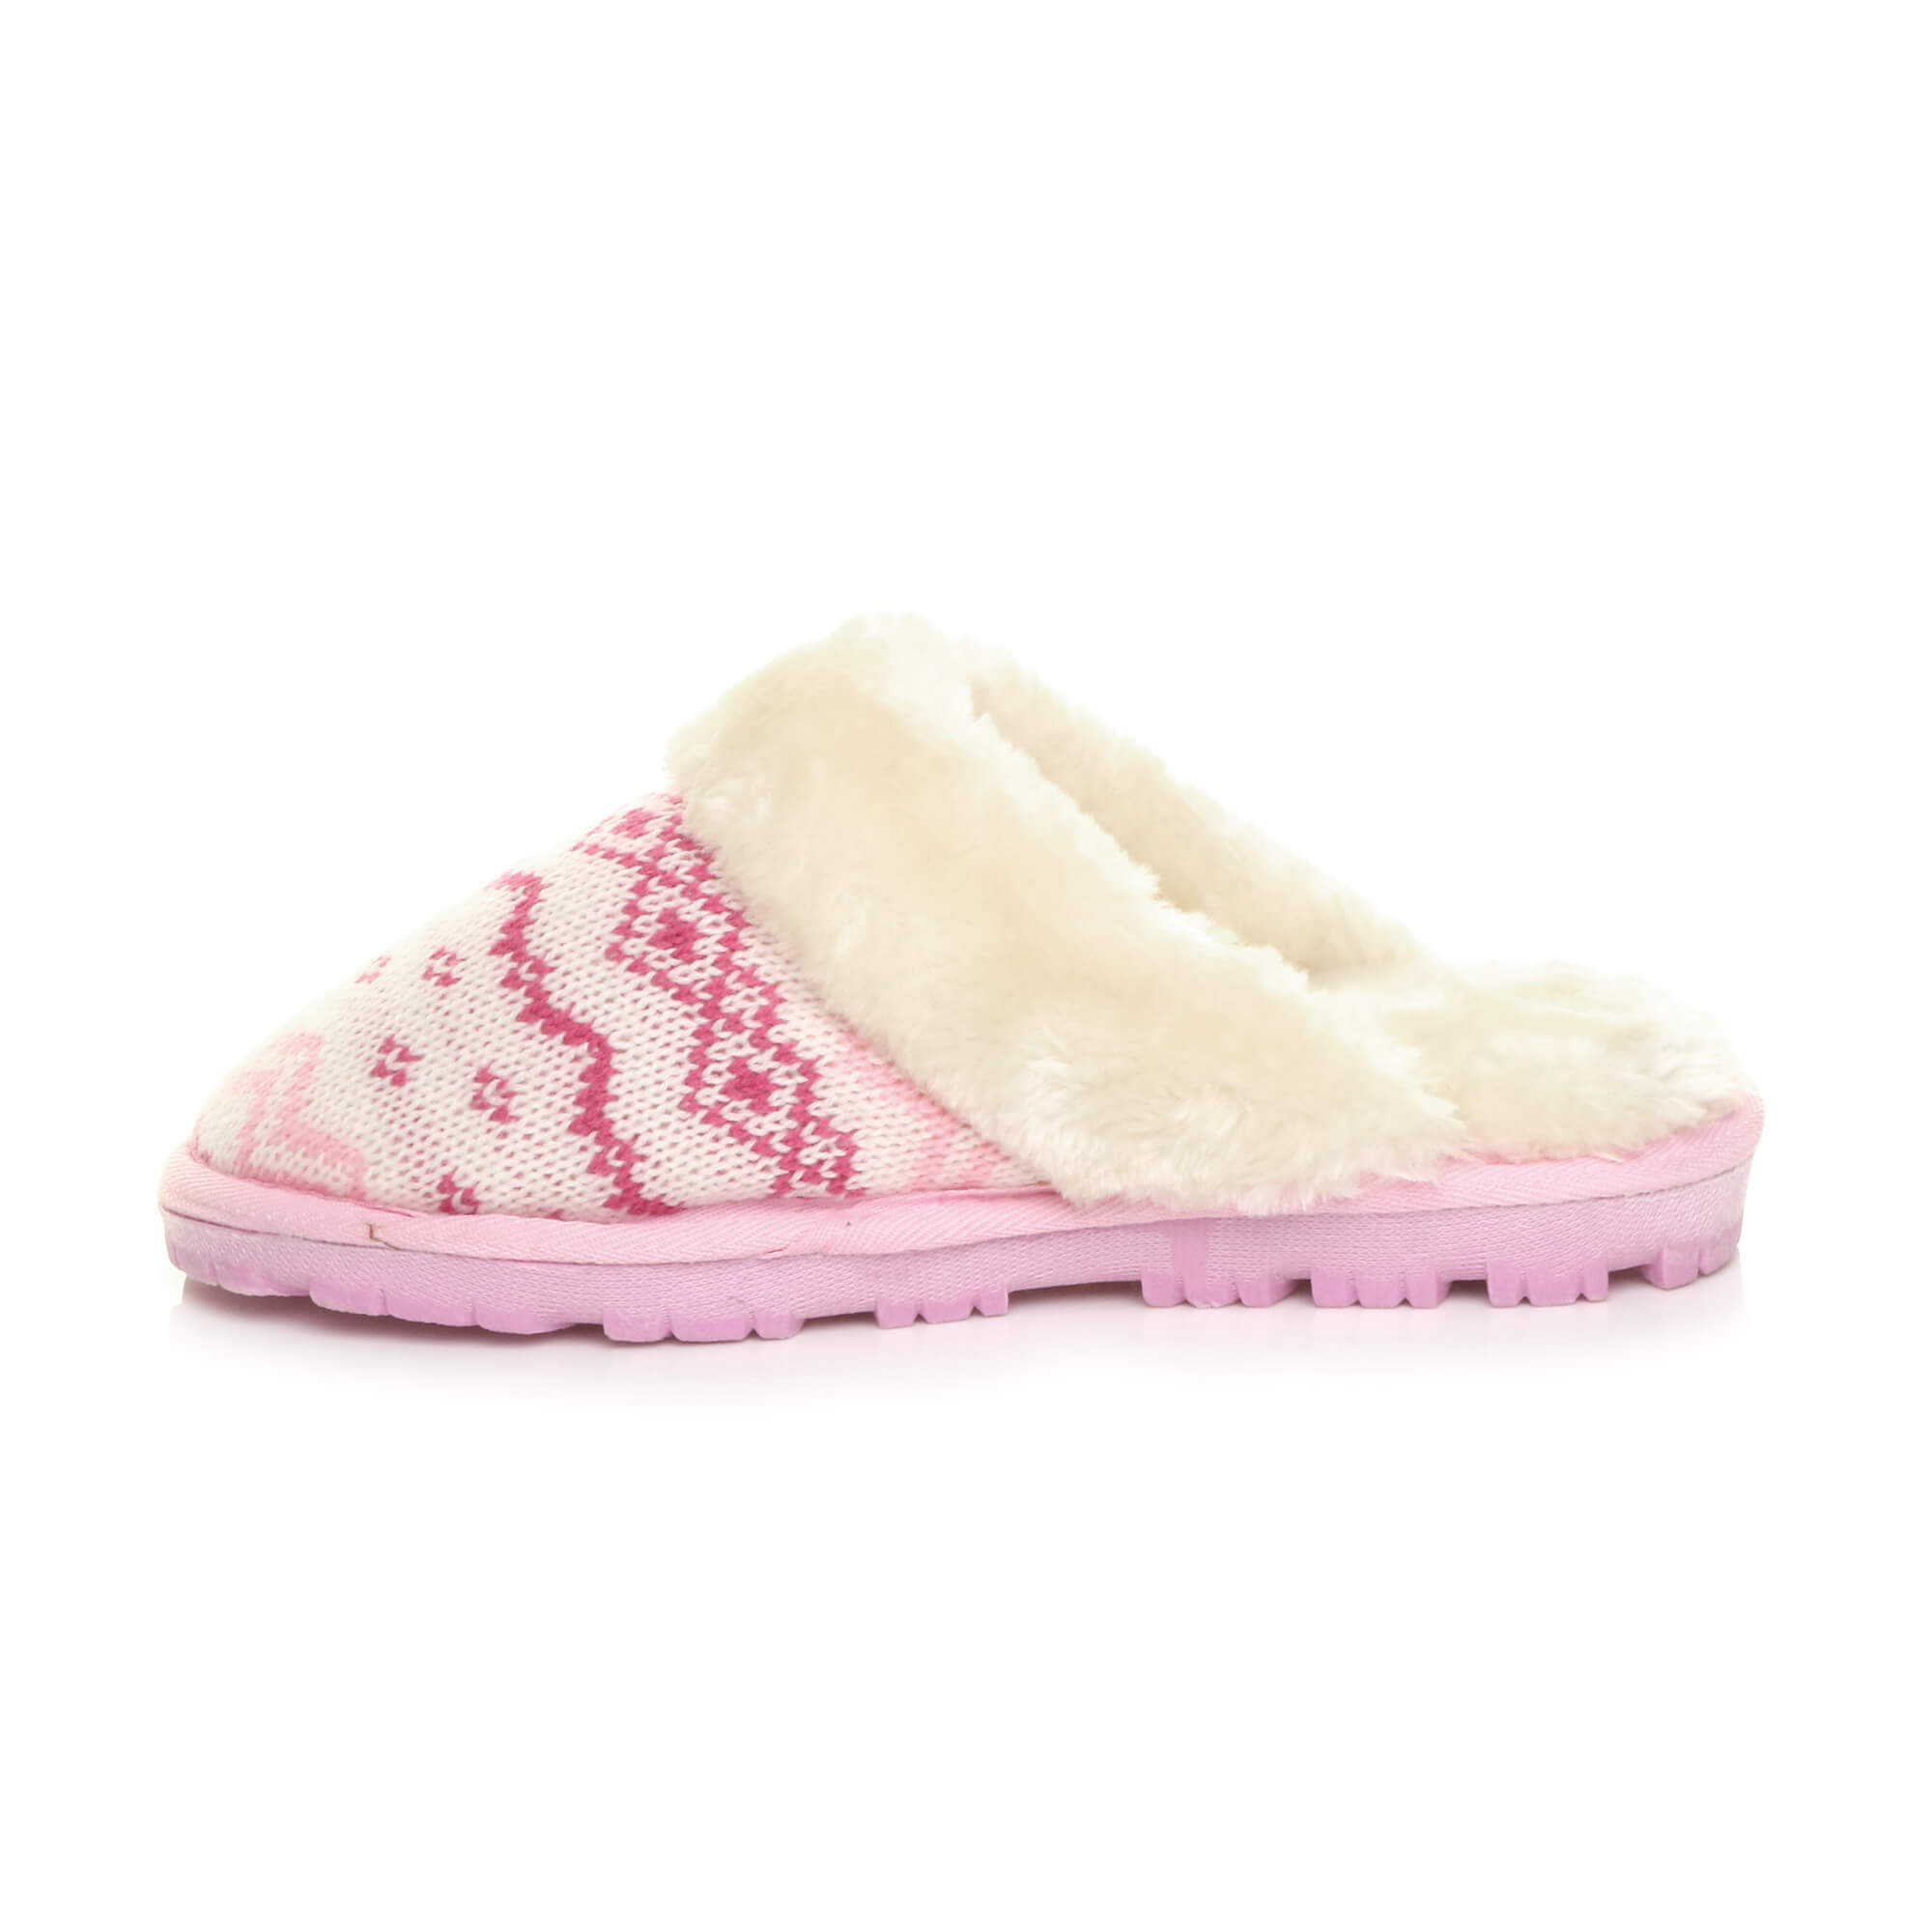 WOMENS-LADIES-FLAT-FUR-LINED-COMFORTABLE-WINTER-MULES-SLIPPERS-HOUSE-SHOES-SIZE thumbnail 74